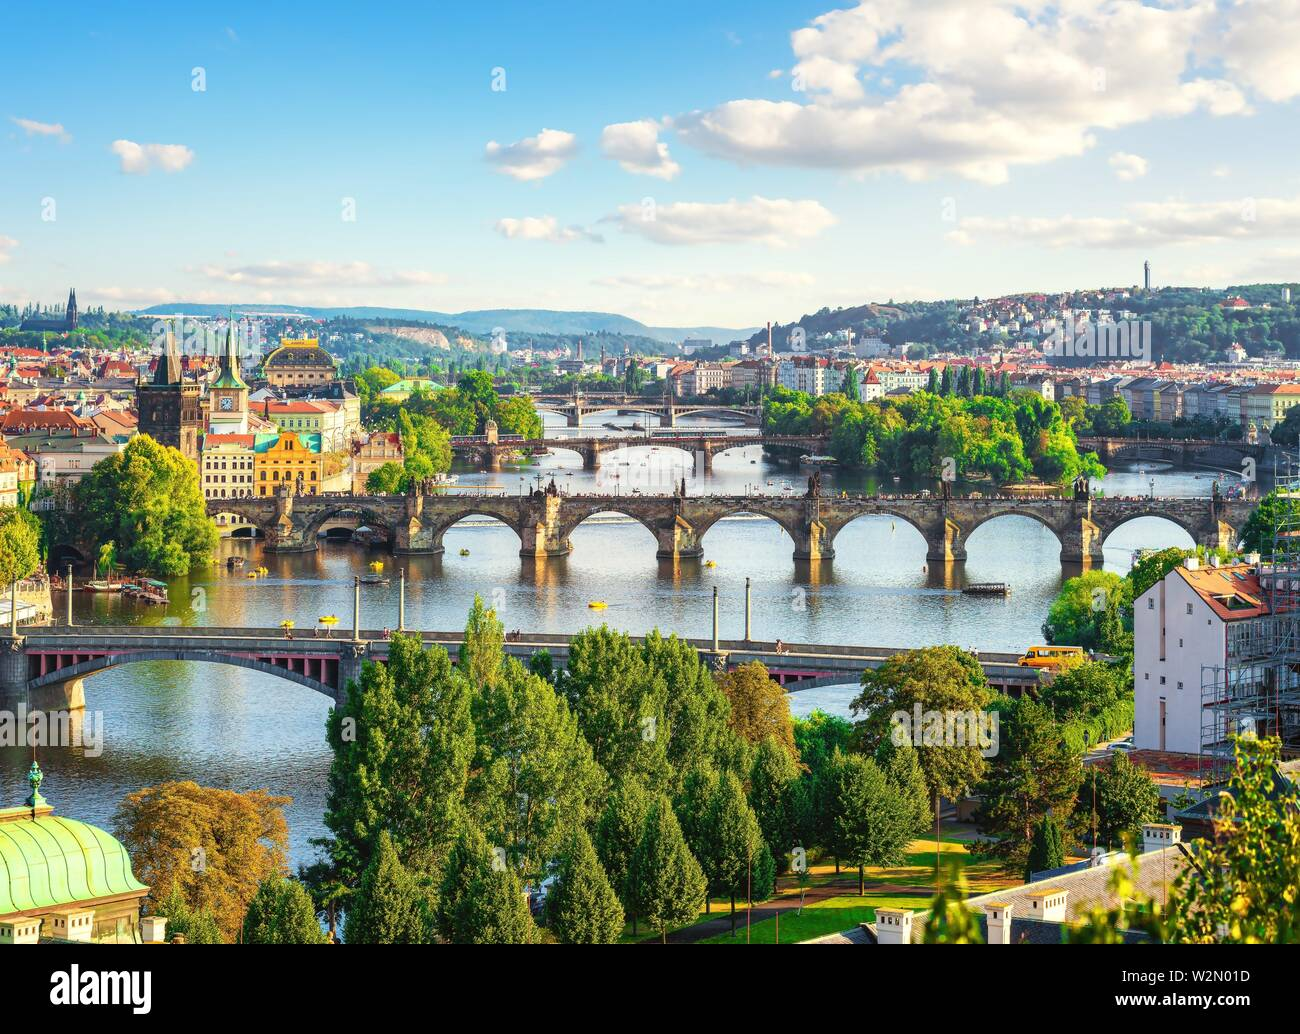 Row of bridges in Prague at summer day. - Stock Image